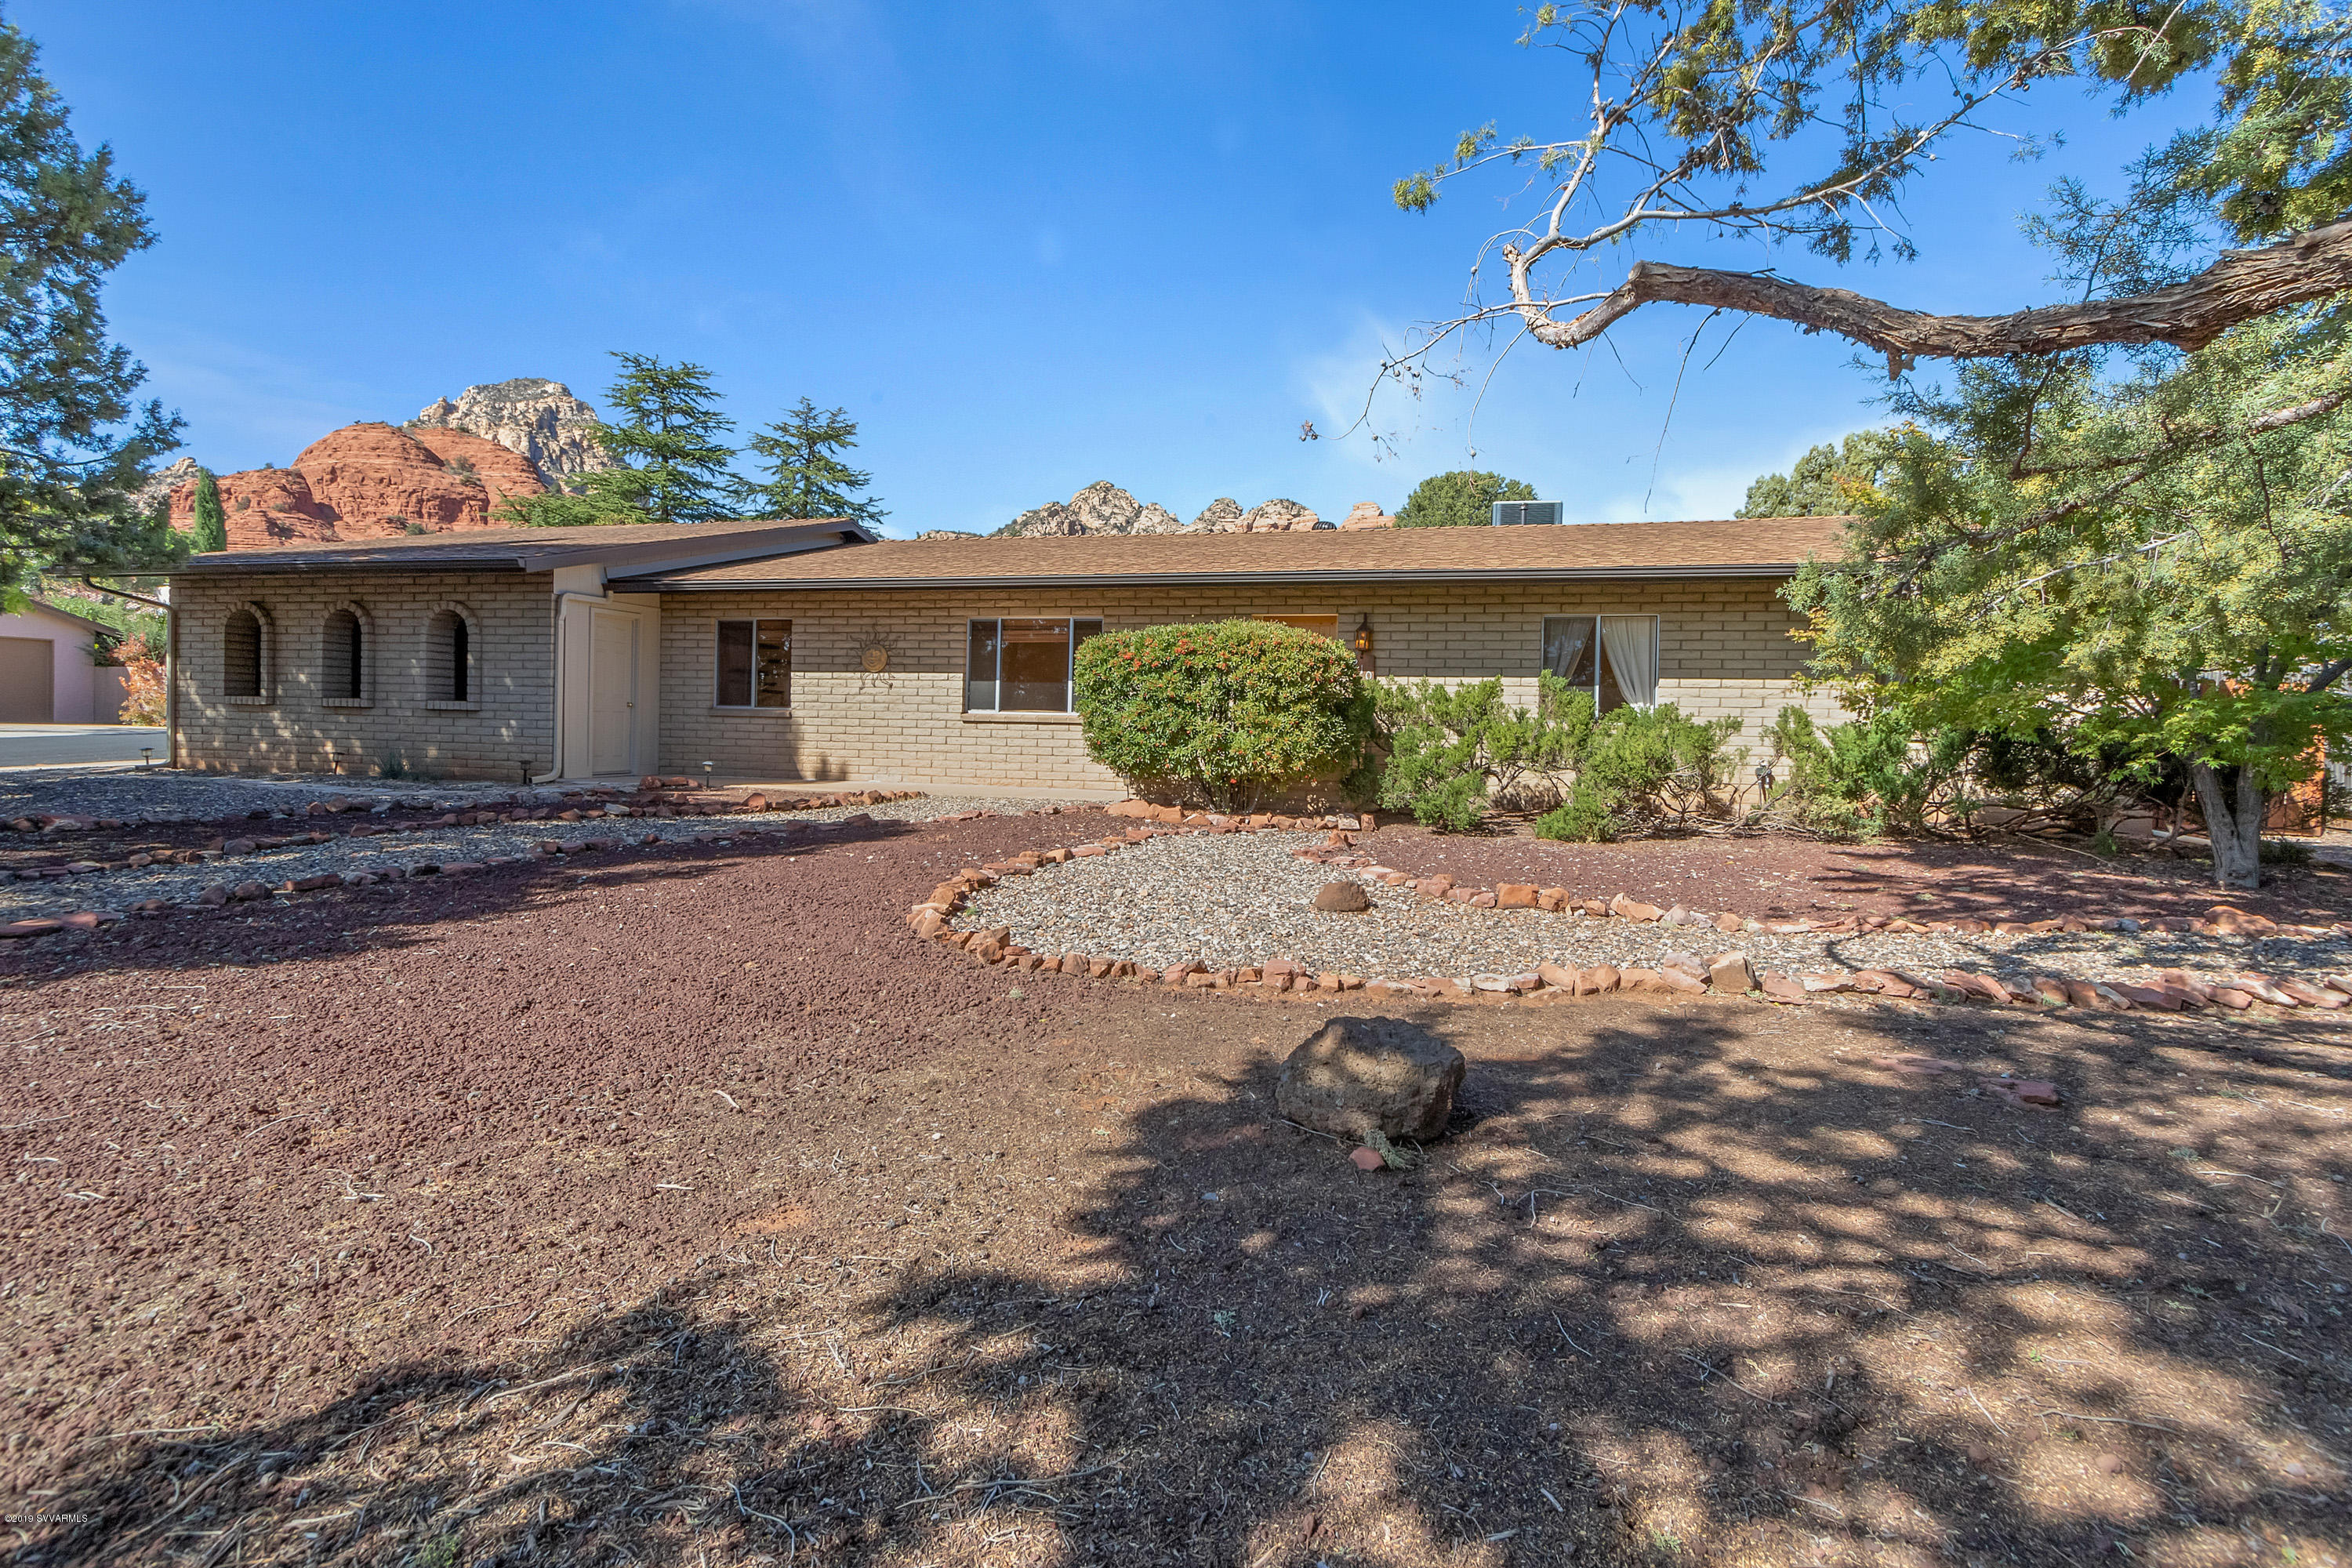 210 Flaming Arrow Way Sedona, AZ 86336